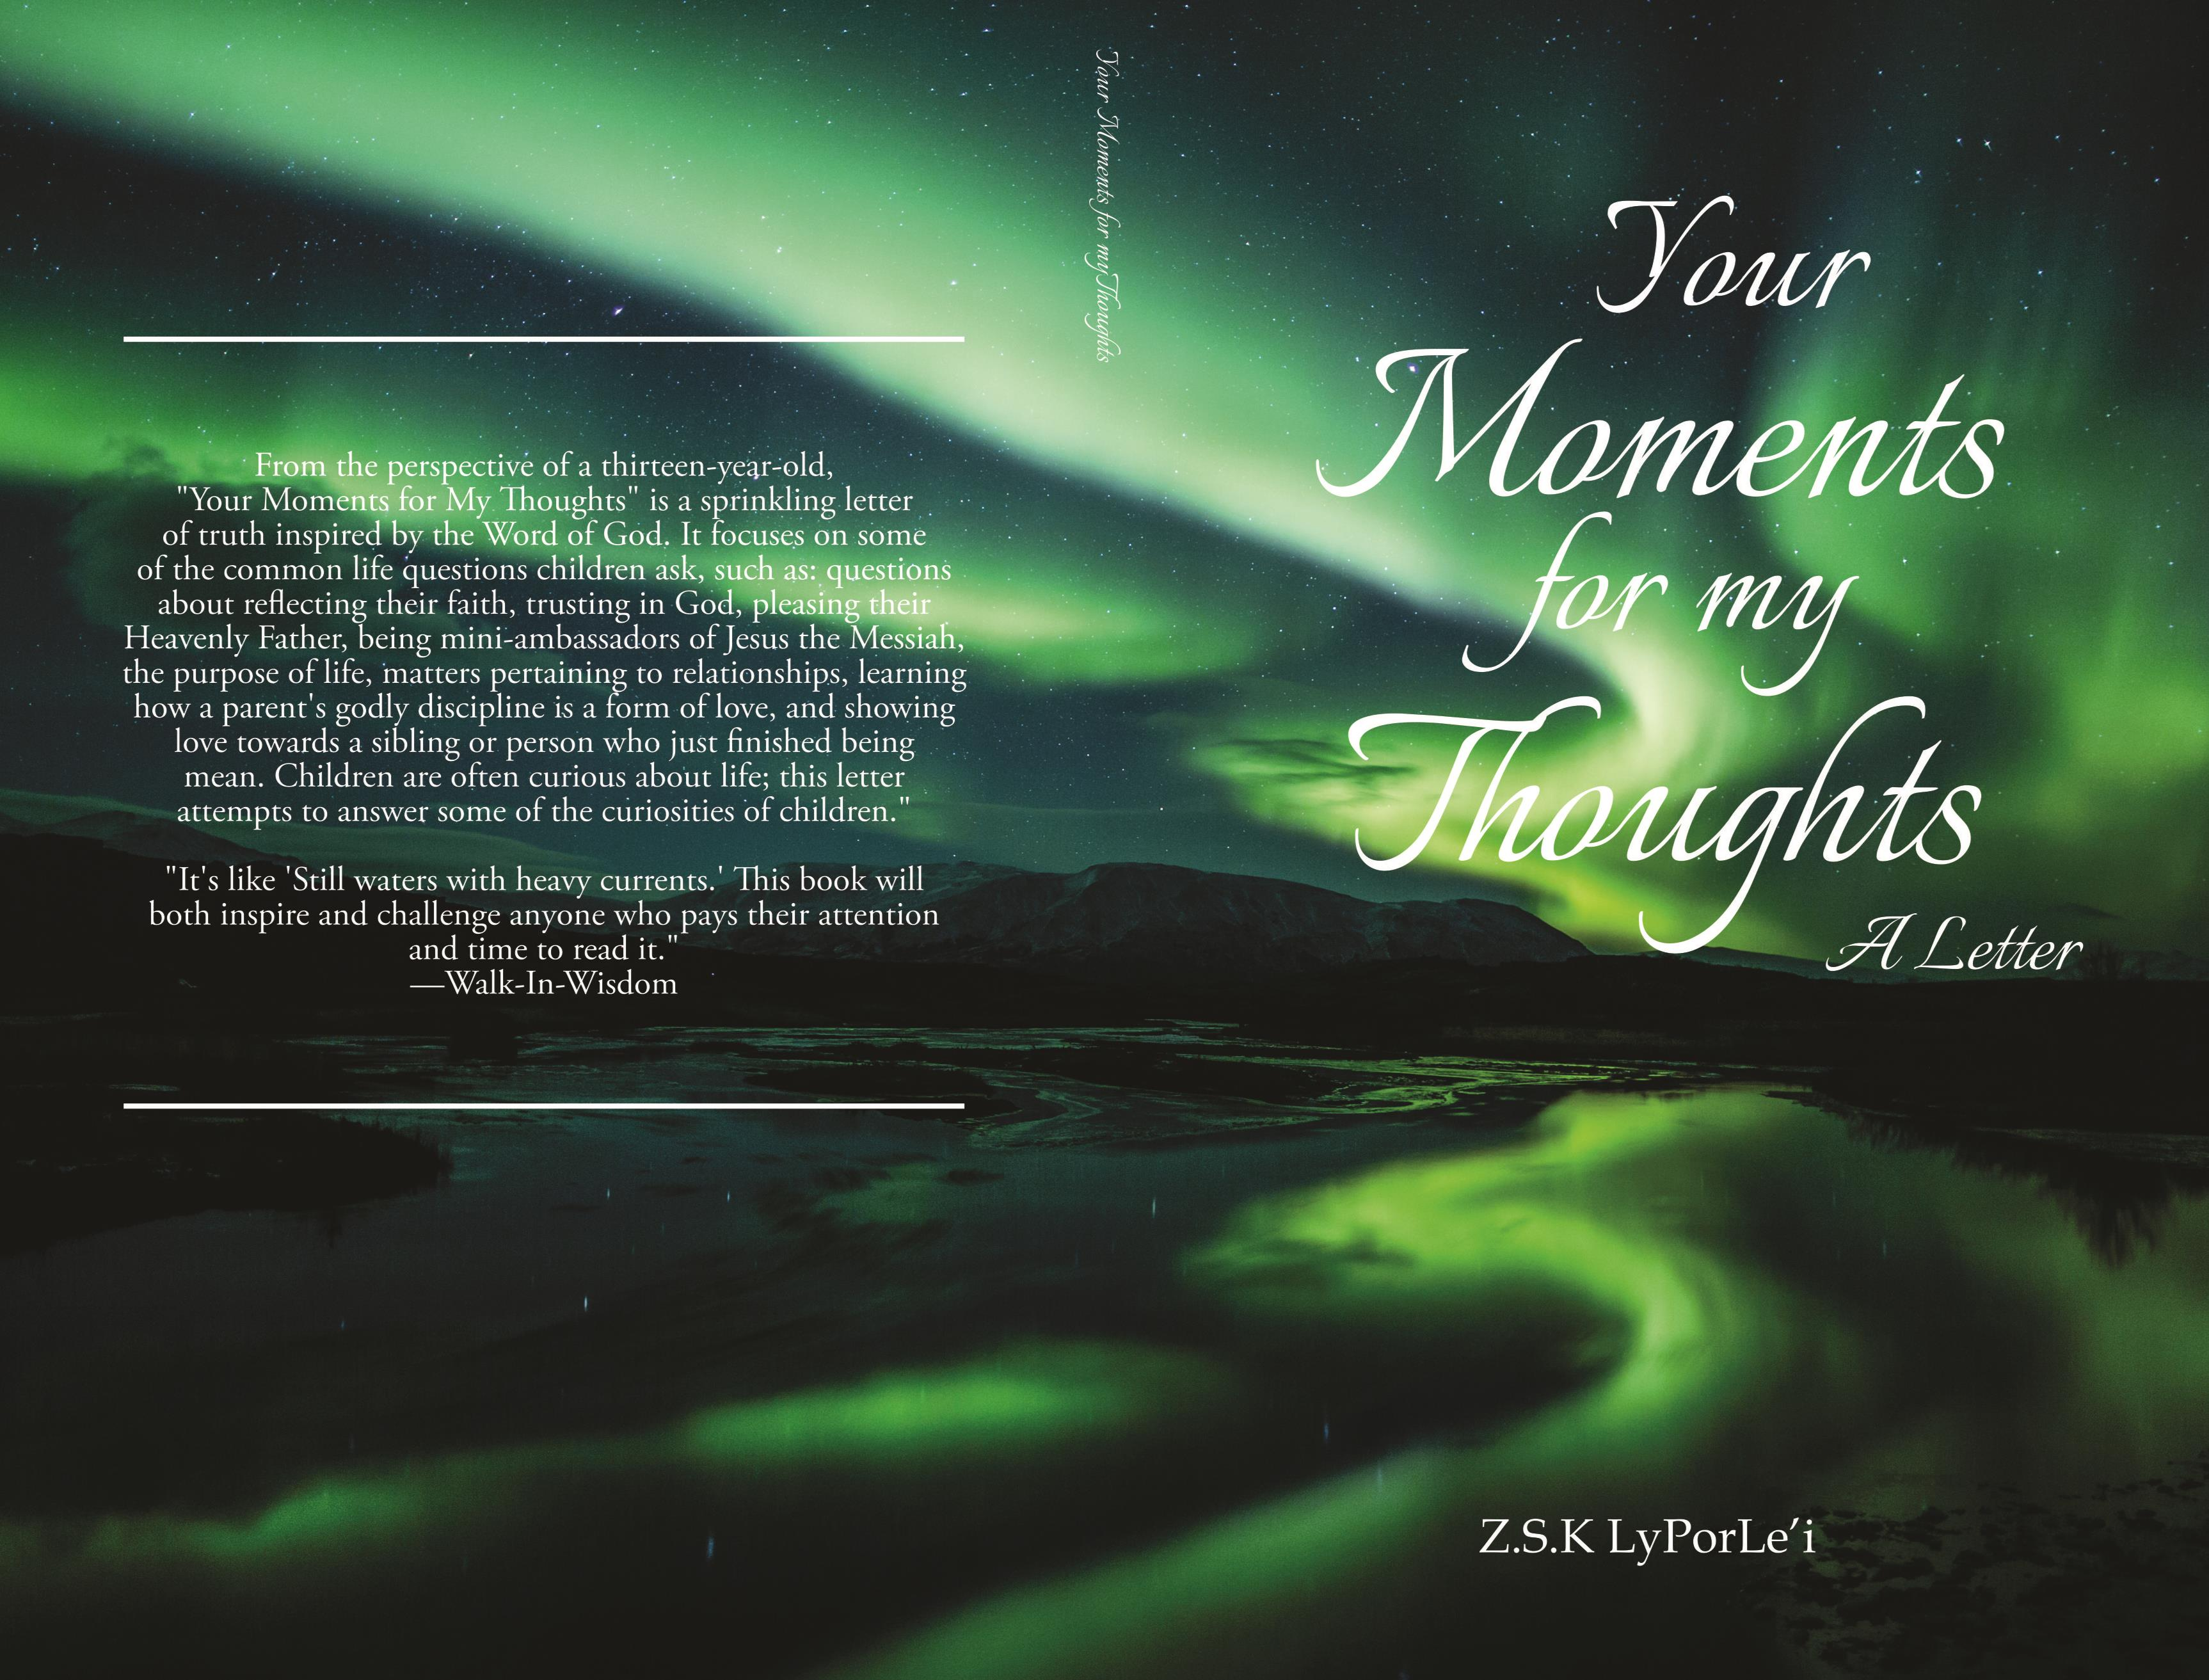 Your Moments for My Thoughts cover image